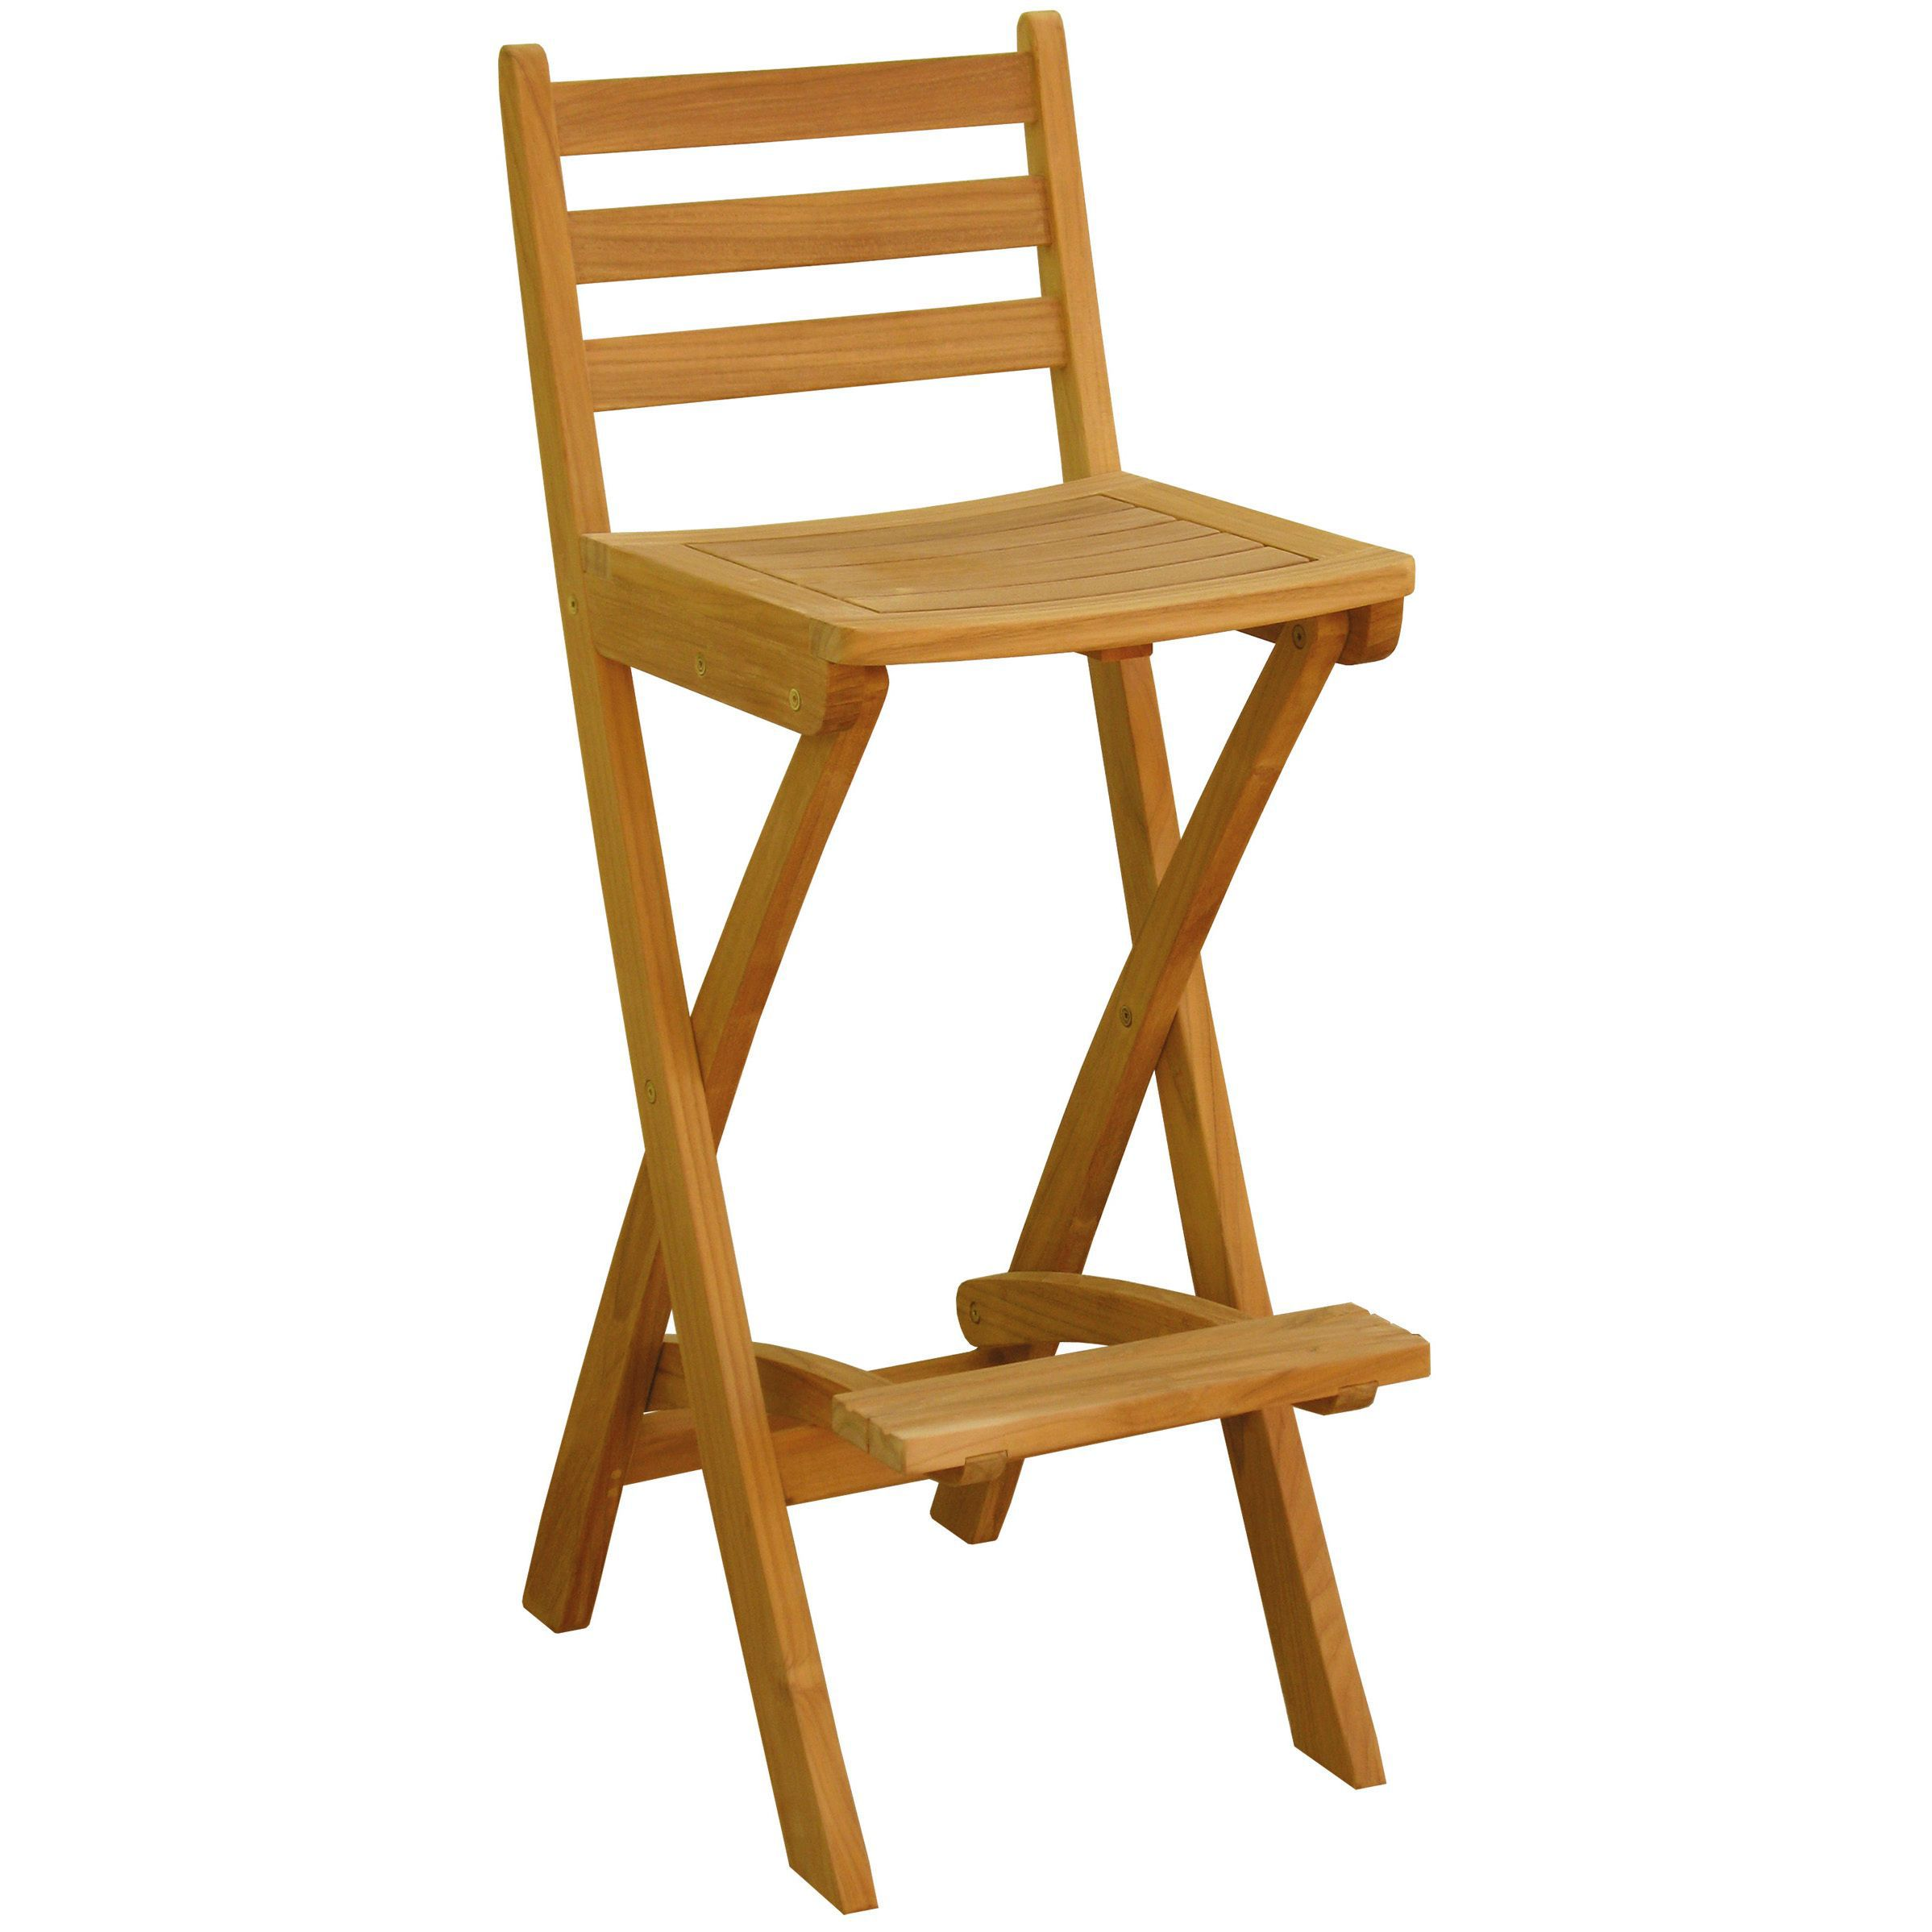 Amazing photo of Aland Wooden Bar Stool Rooms DIY at Bu0026Q with #7D4811 color and  sc 1 st  kashiori.com & Wooden Stool B And Q | kashiori.com Wooden Sofa Chair Bookshelves islam-shia.org